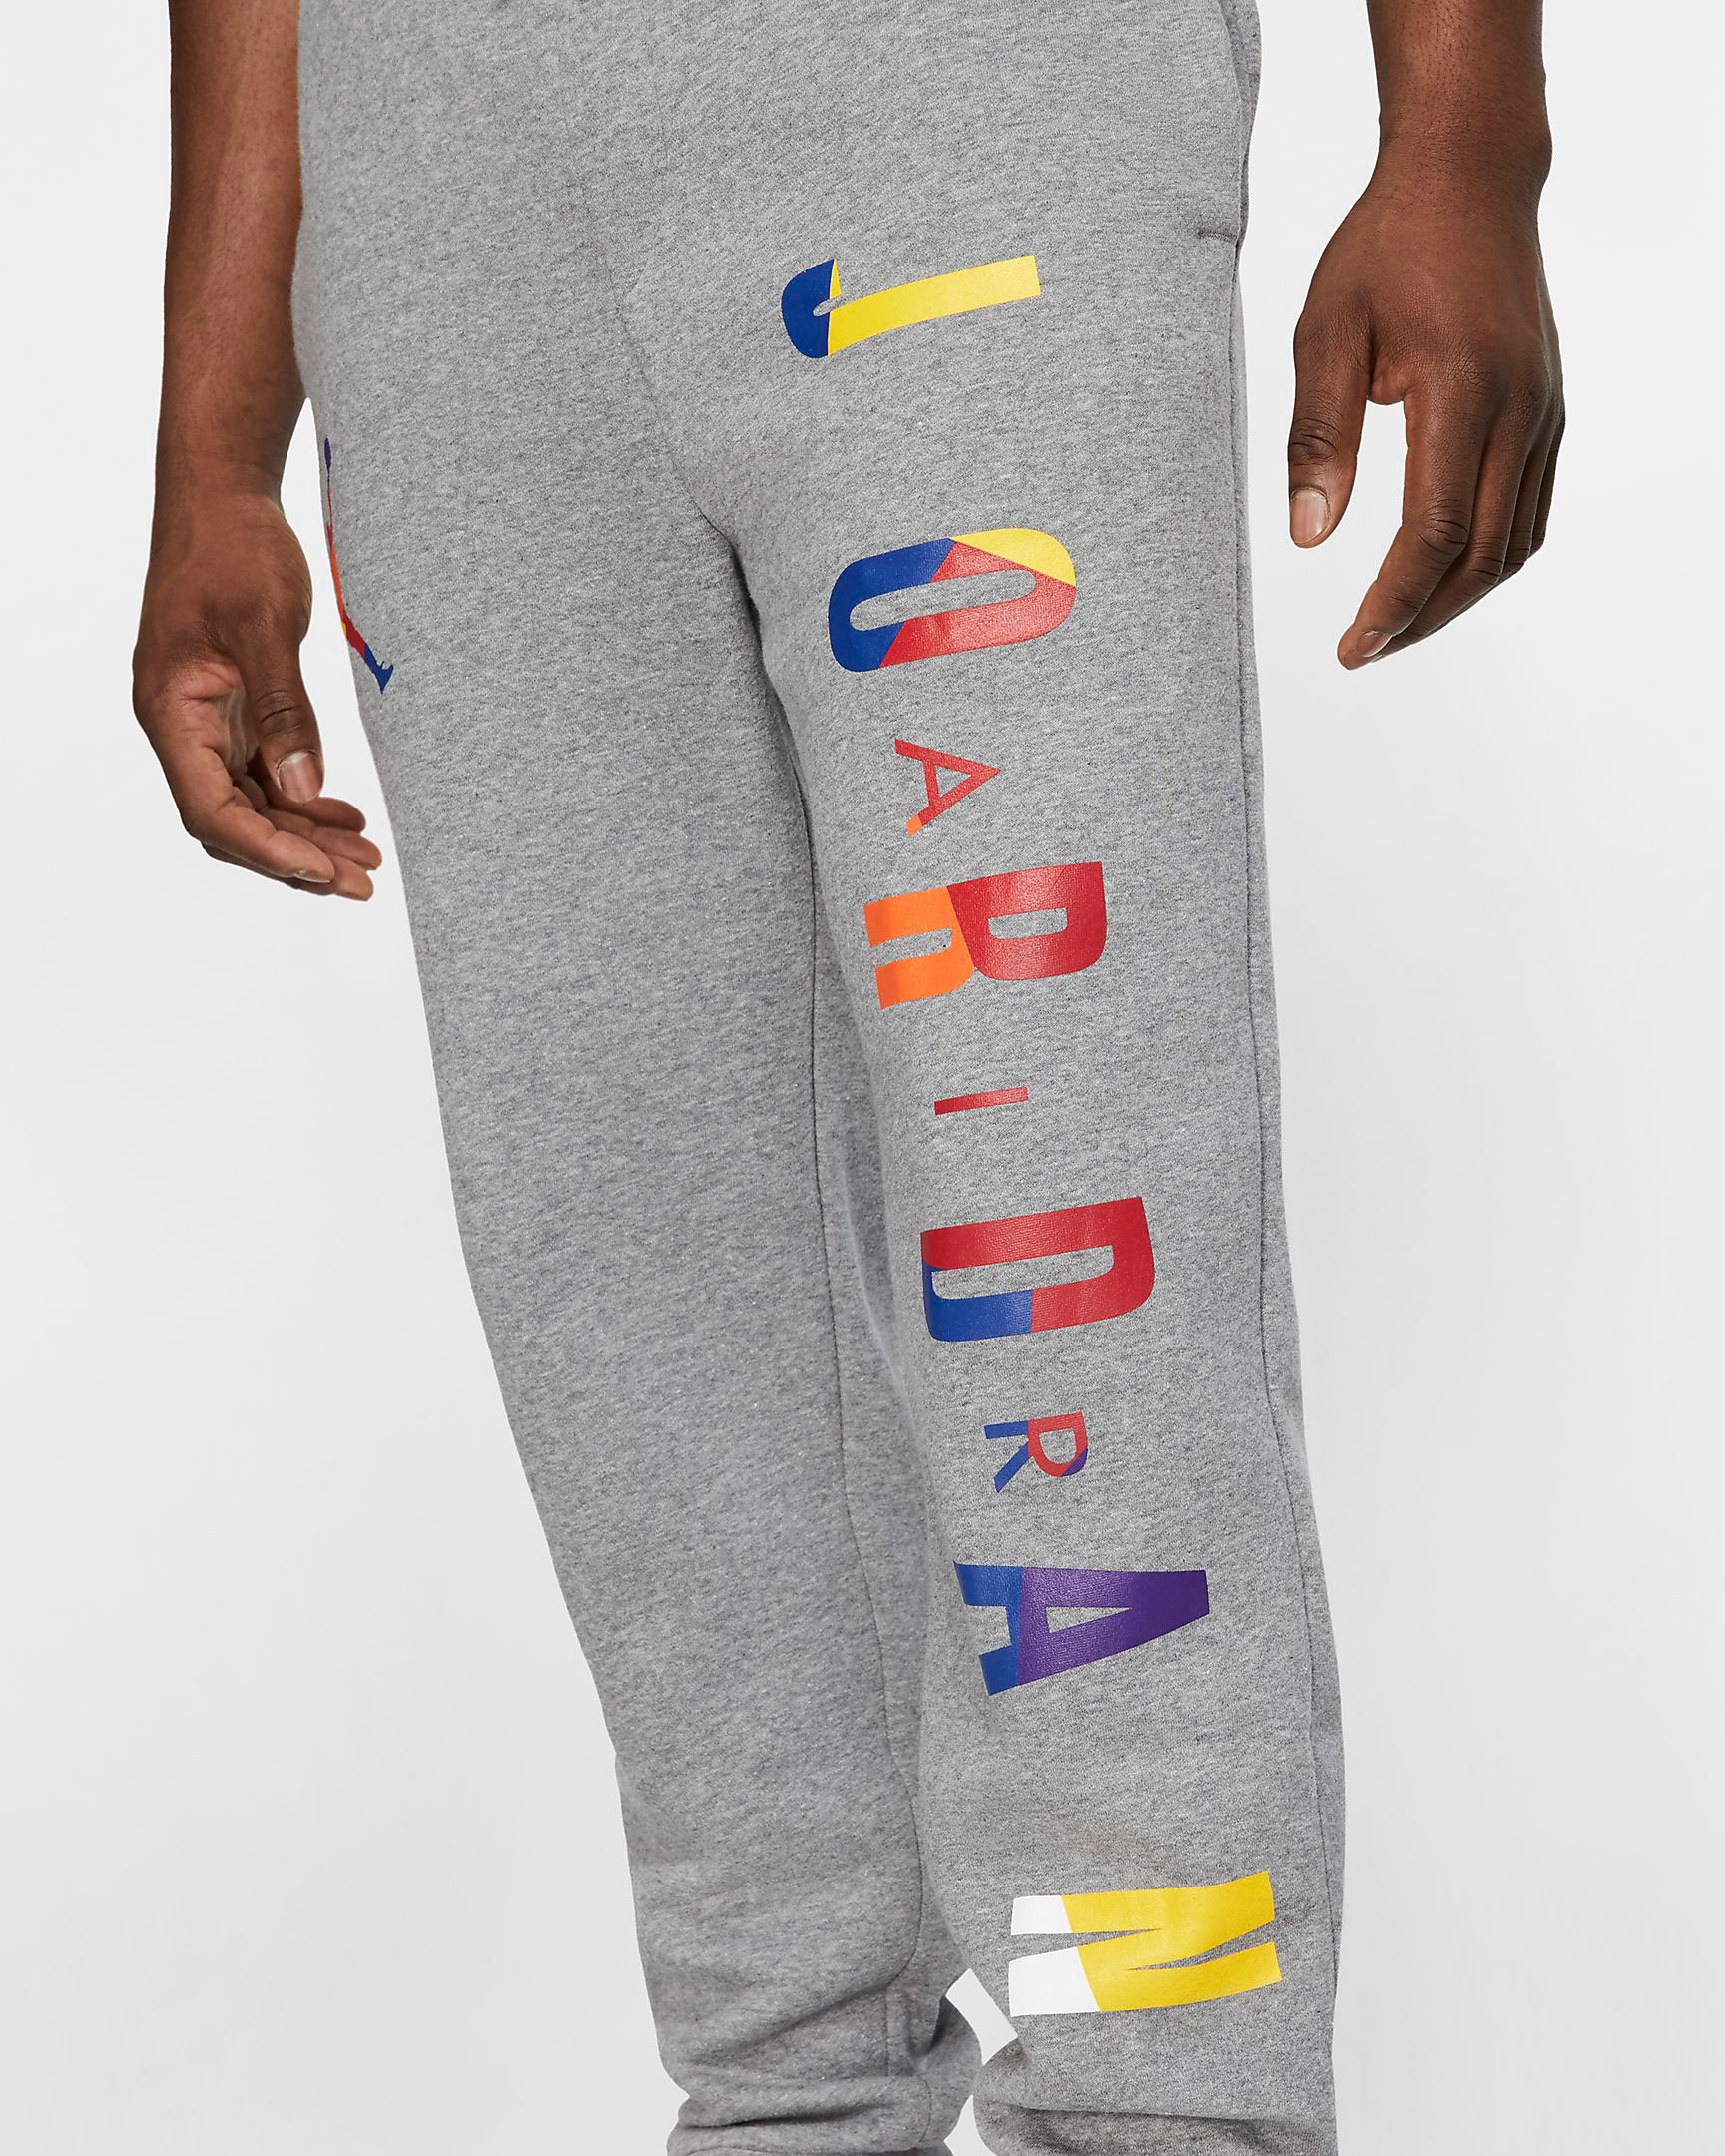 air-jordan-3-knicks-jogger-pant-match-grey-3